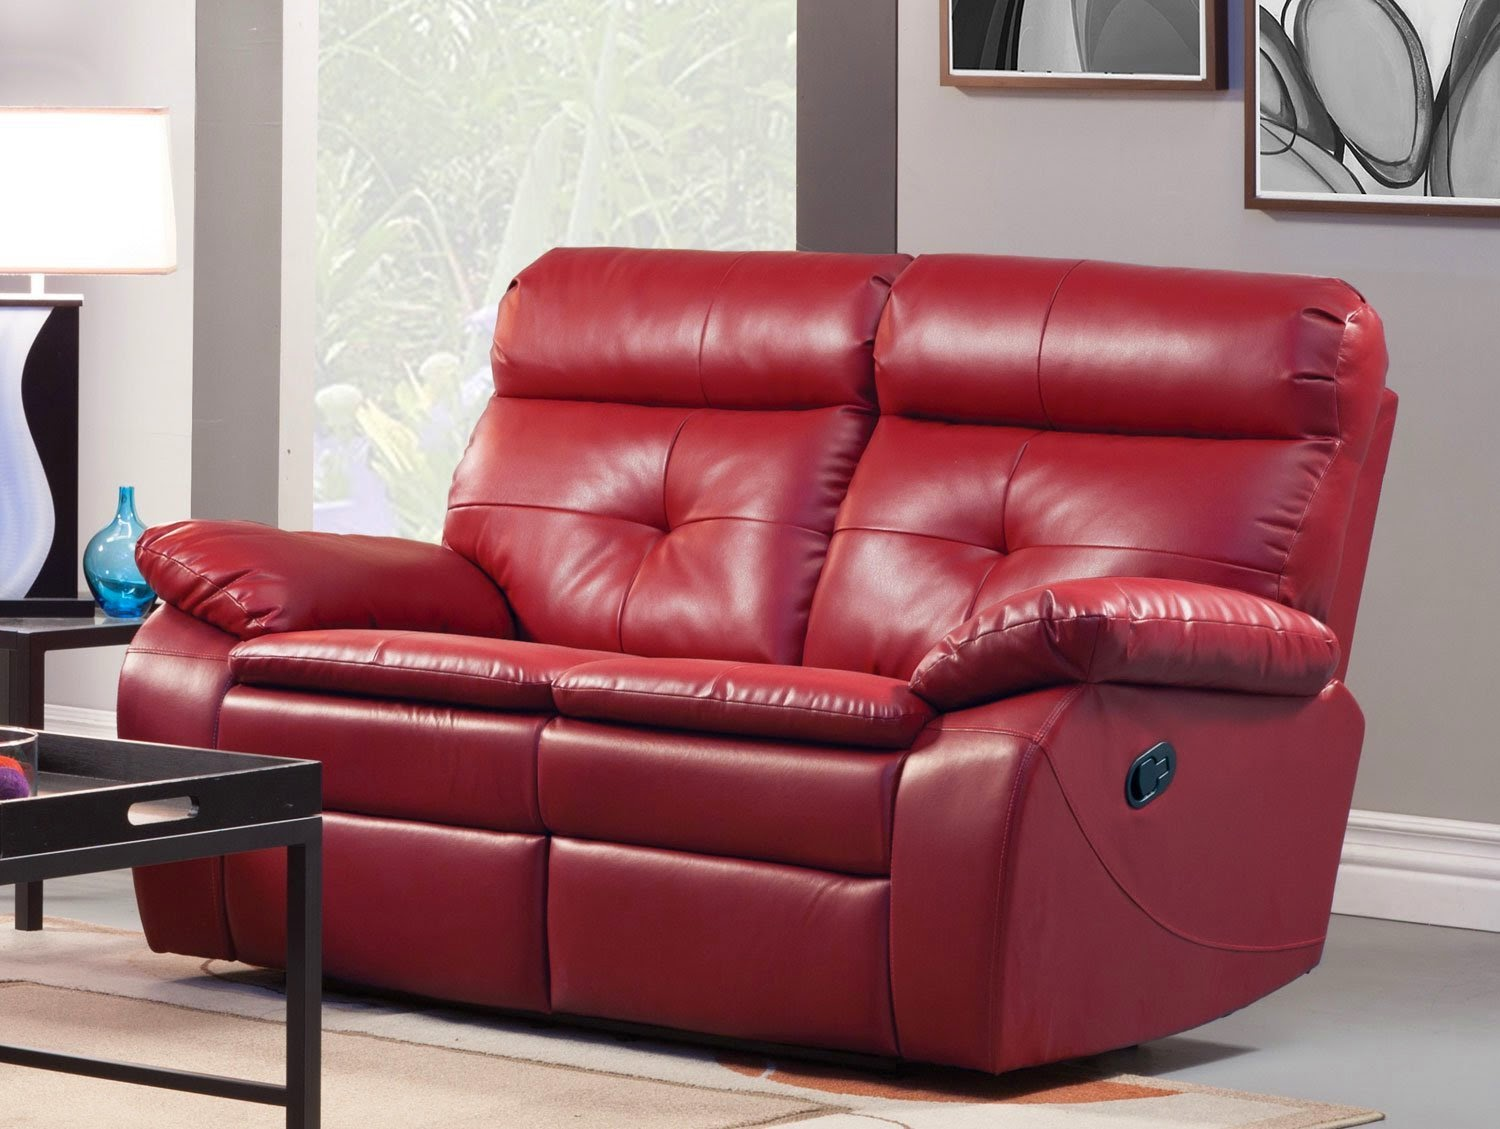 Recliner Sets For Sale | Suede Sofas For Sale Inspiration Suede ...